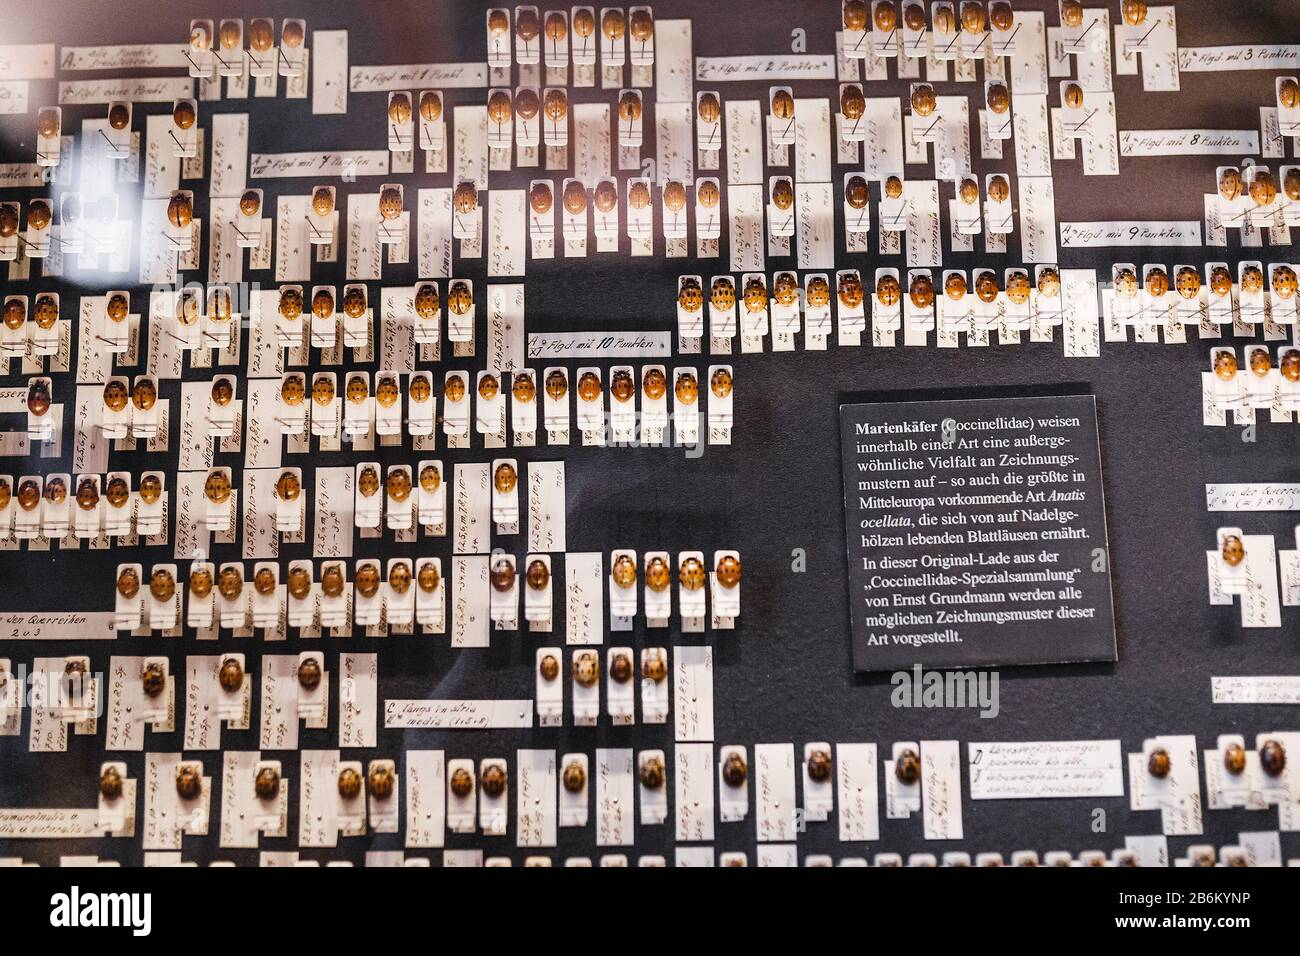 24 MARCH 2017, VIENNA, MUSEUM OF NATURAL HISTORY, AUSTRIA: Ladybugs ladybird beetles collection in museum Stock Photo